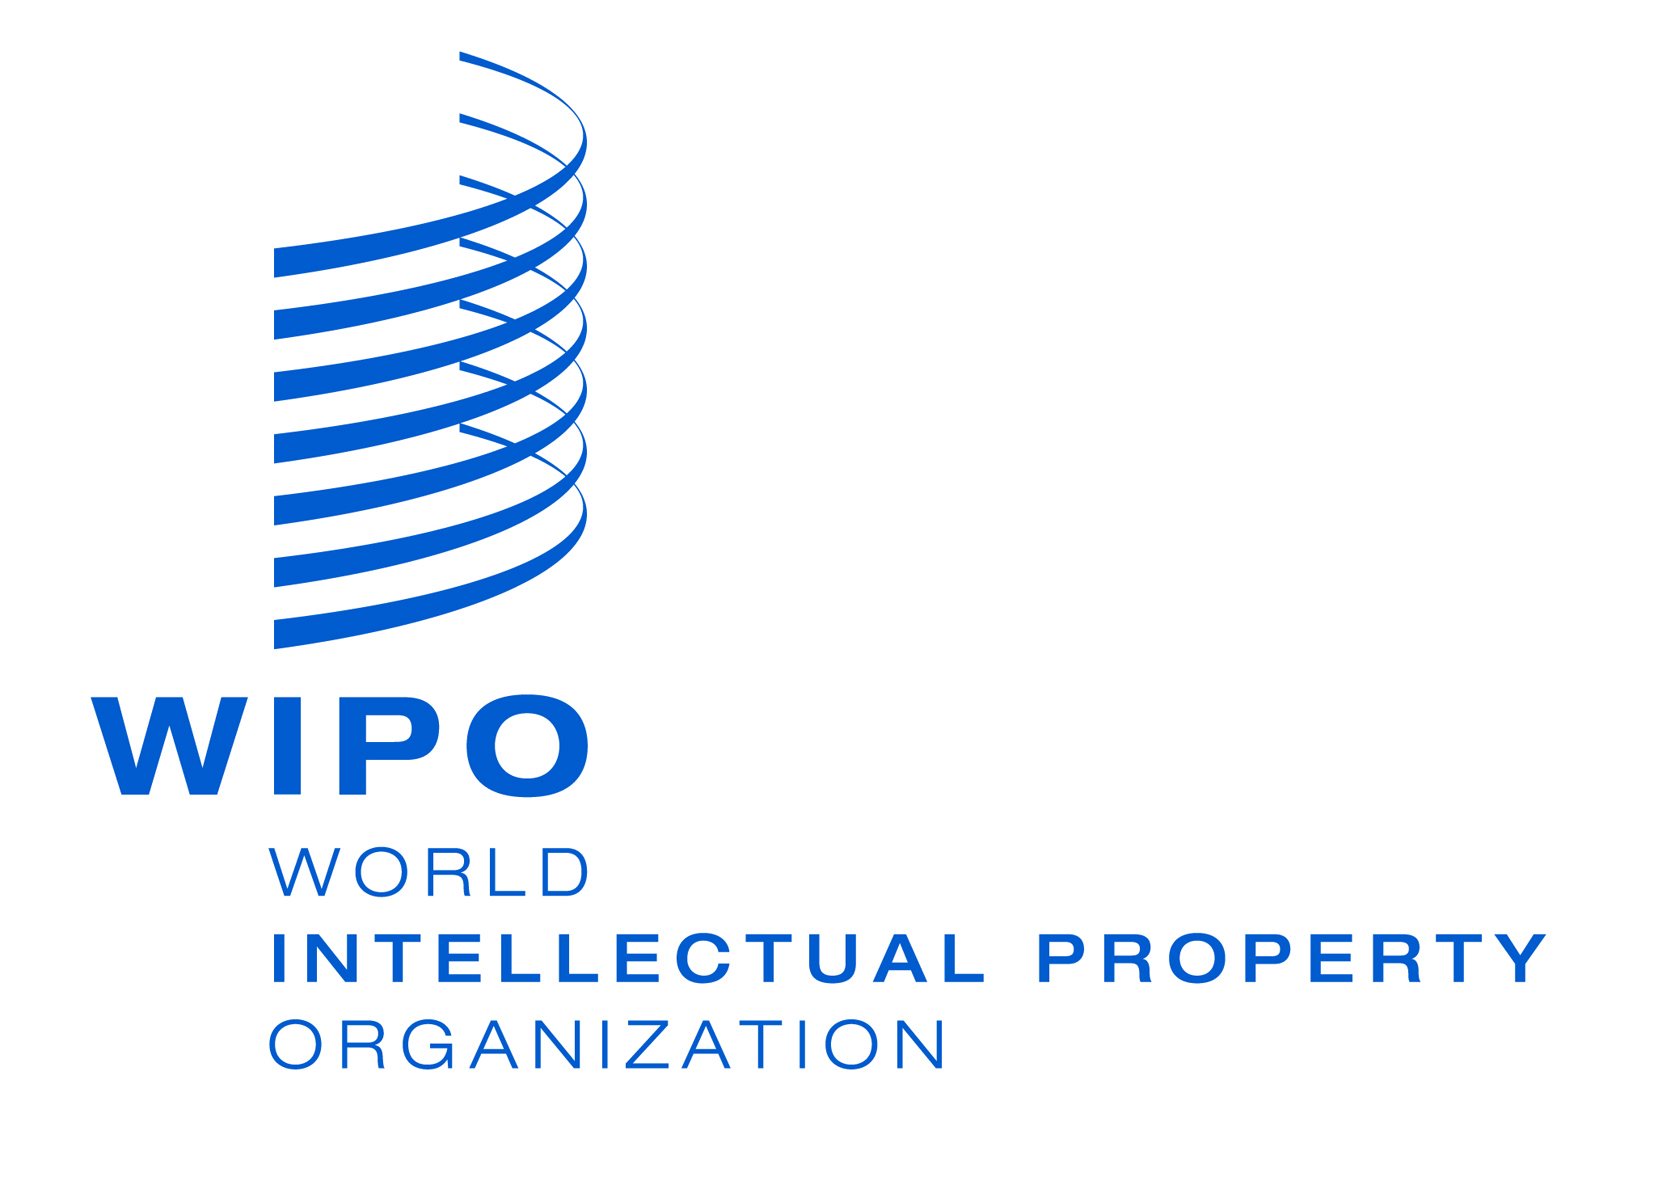 The Geography of Innovation in the 21st century: Local Hotspots, Global Networks World Intellectual Property Organization (WIPO)